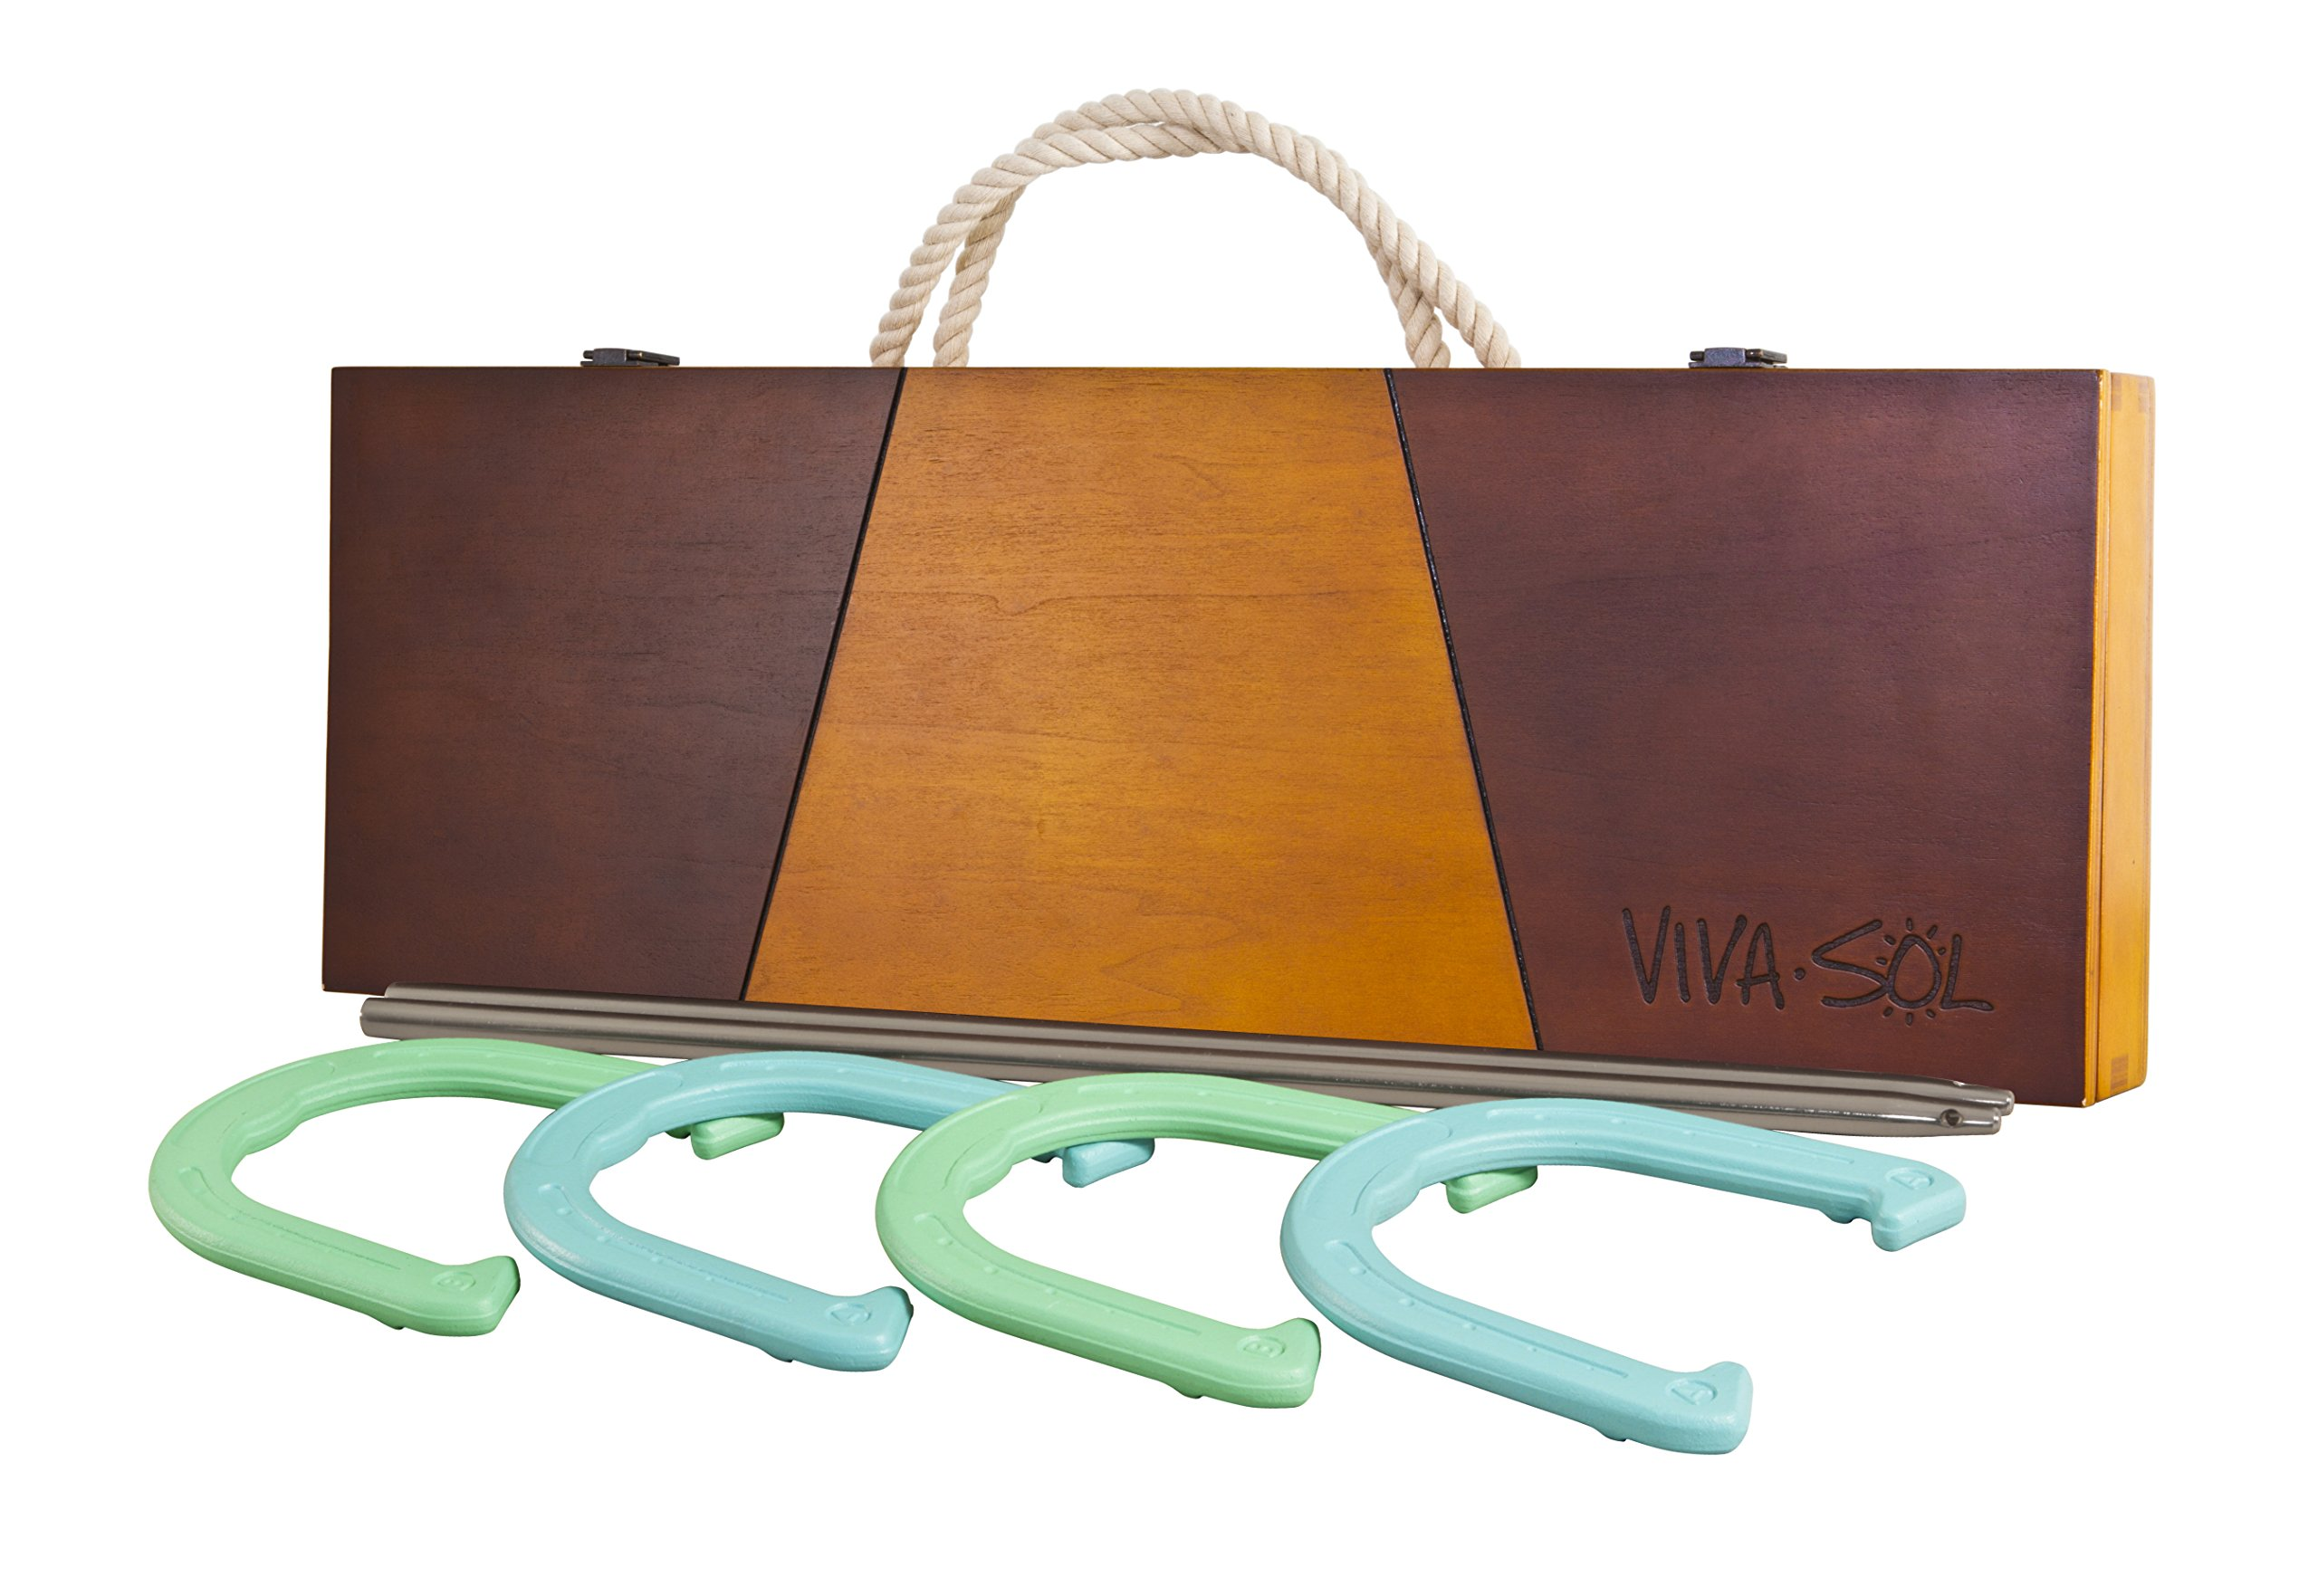 Viva Sol Premium Horseshoes Set with Wooden Case by Viva Sol